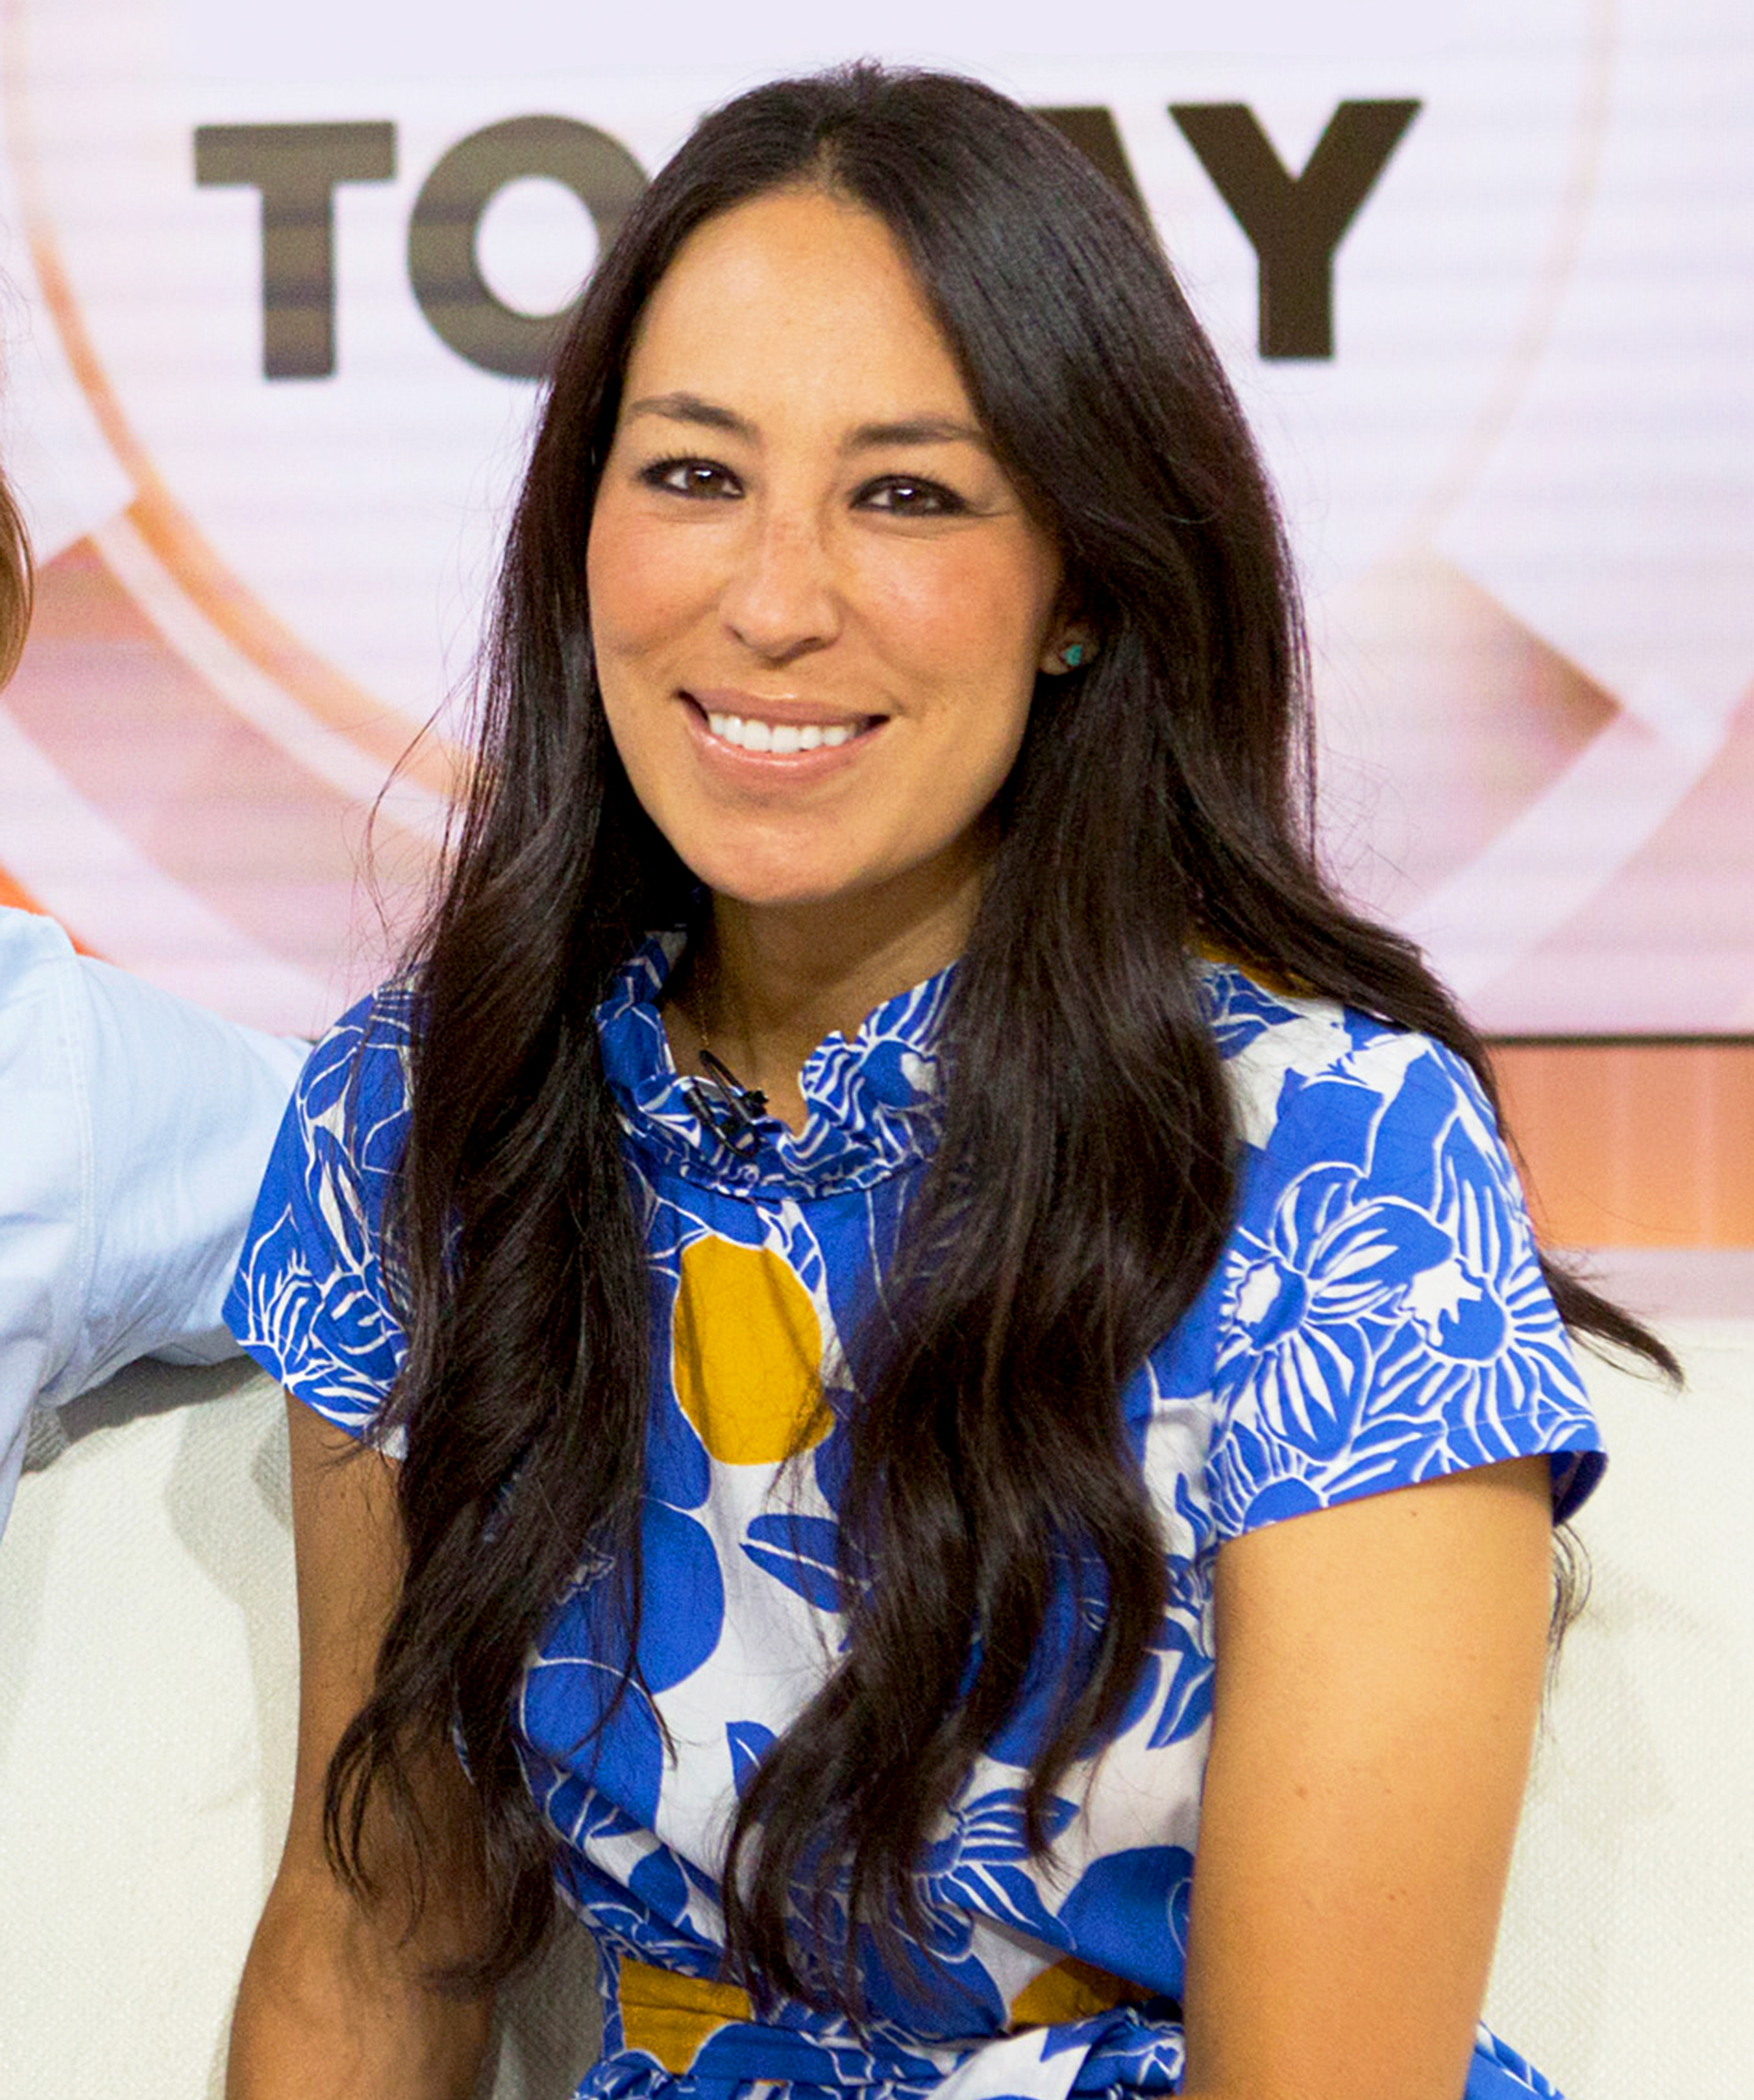 Joanna Gaines reveals her late-night pregnancy cravings